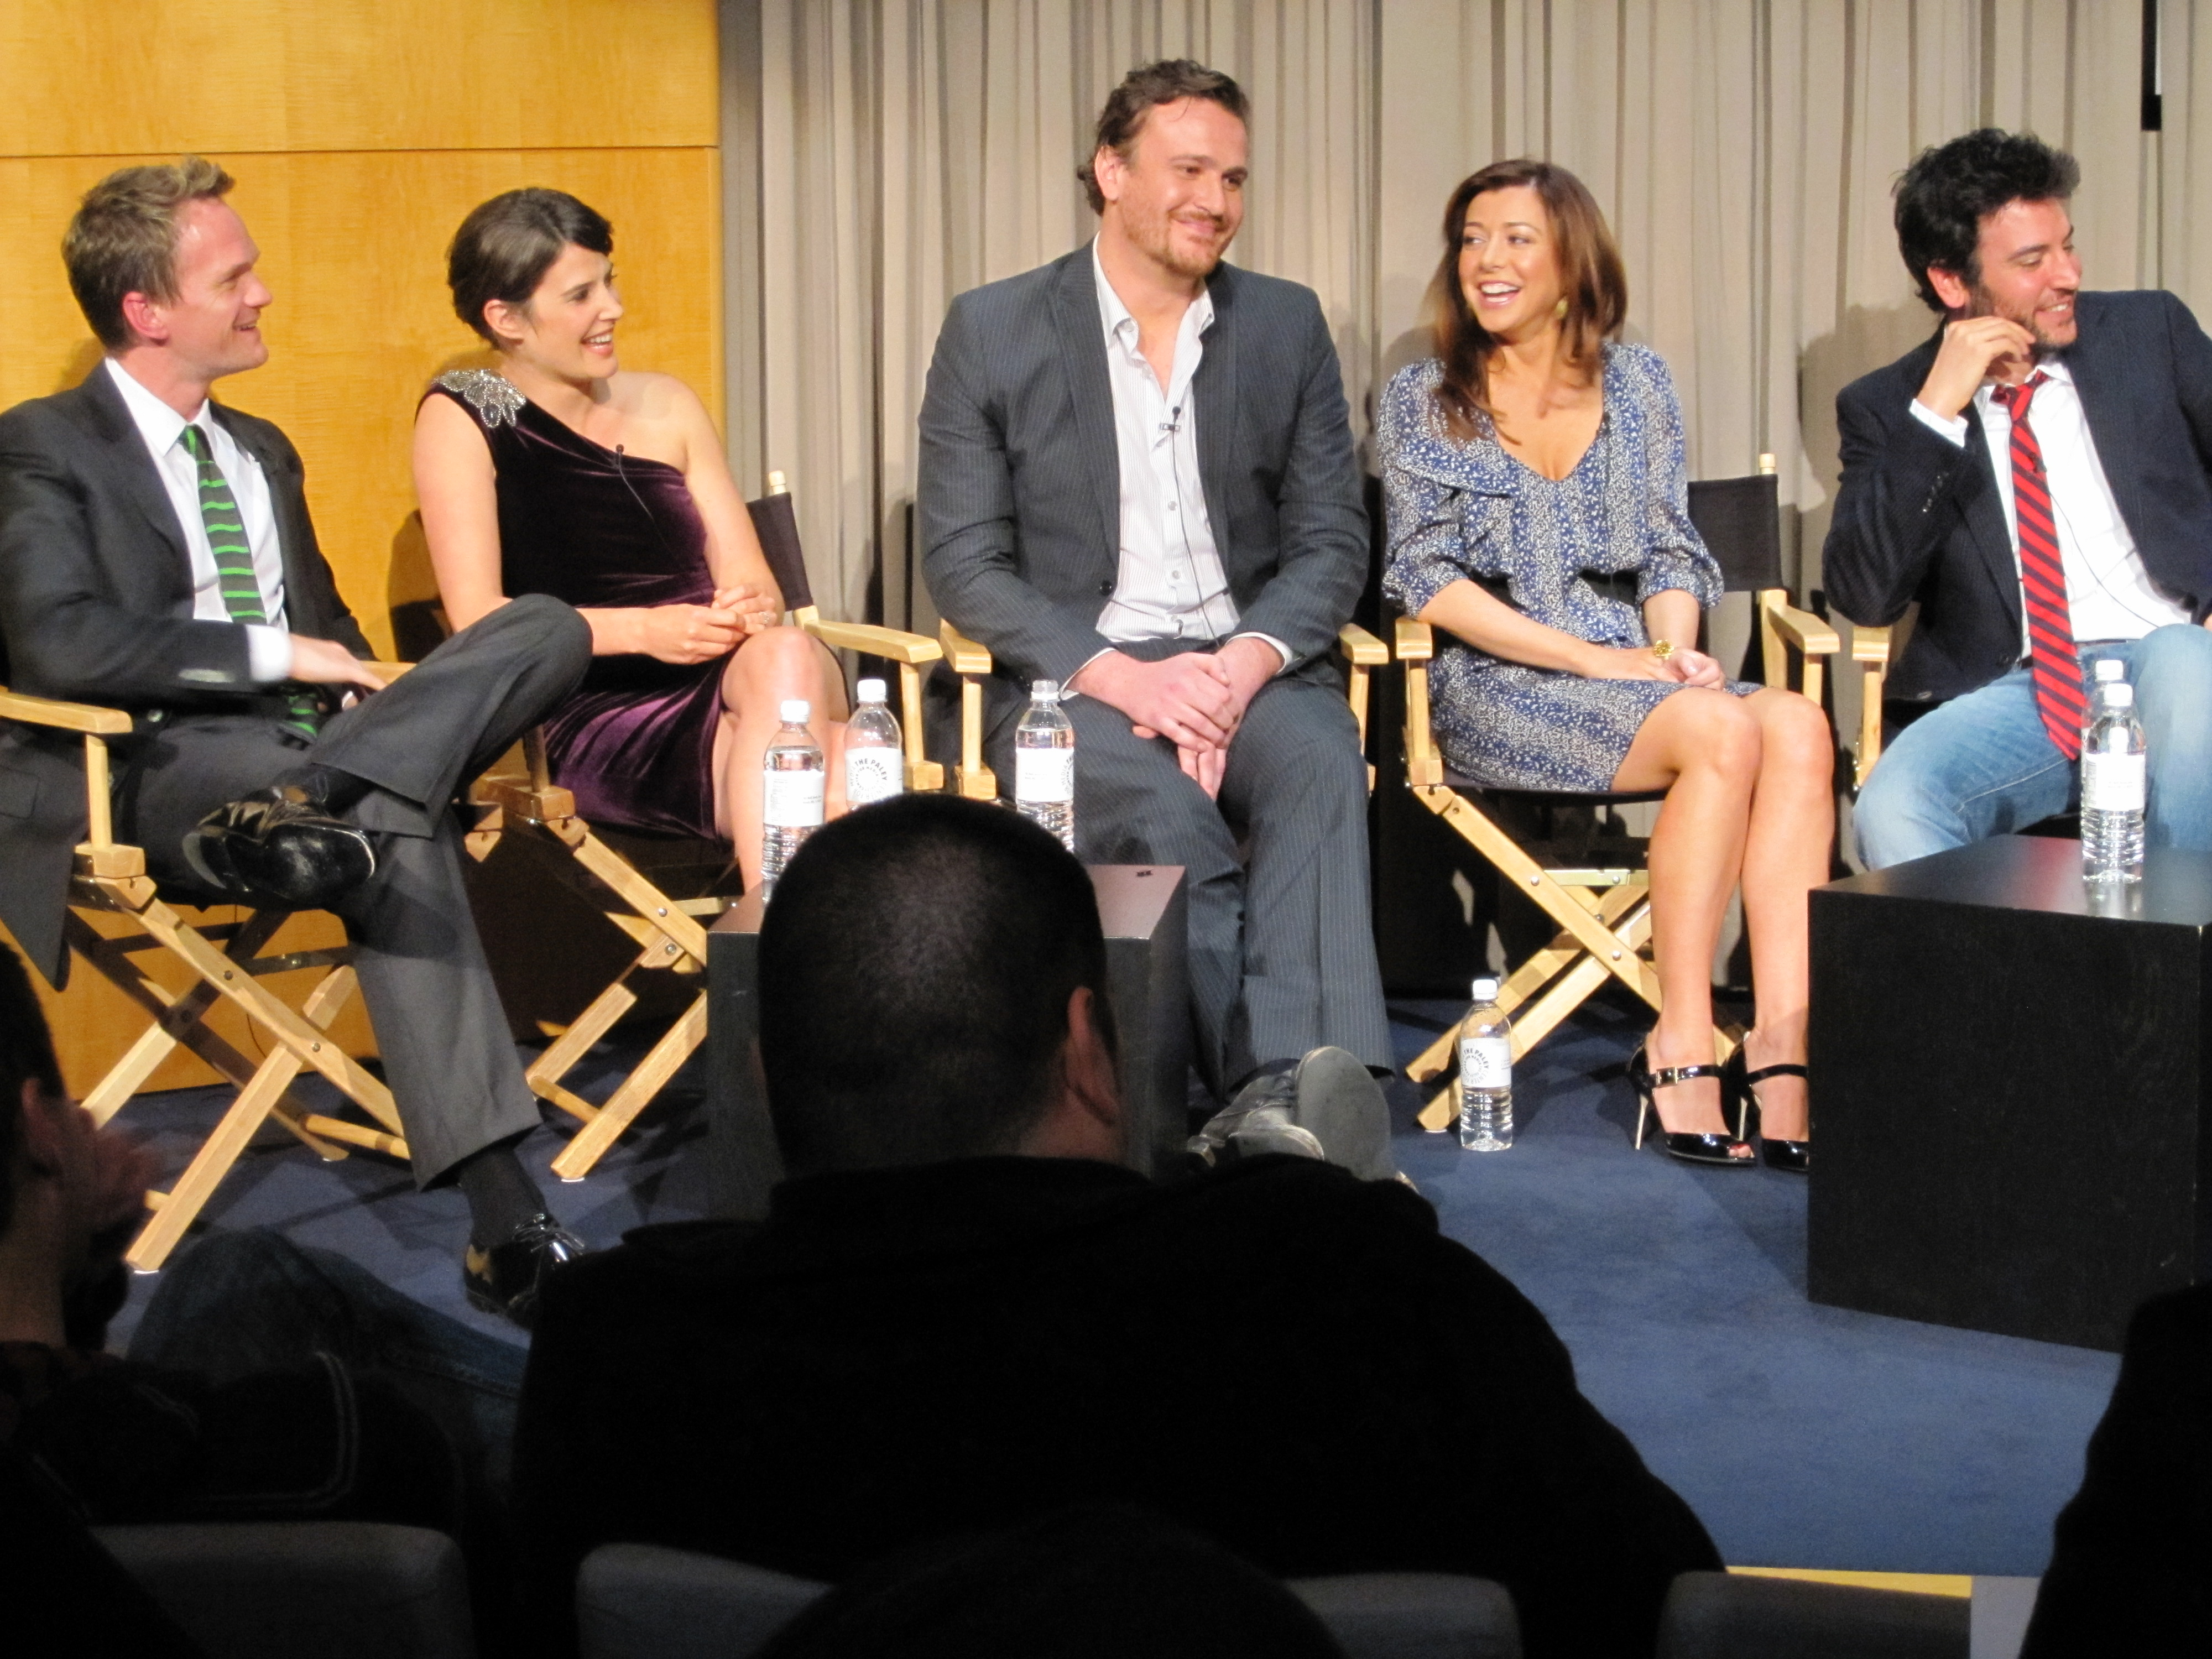 Resuscitato lo spin-off di How I Met Your Mother